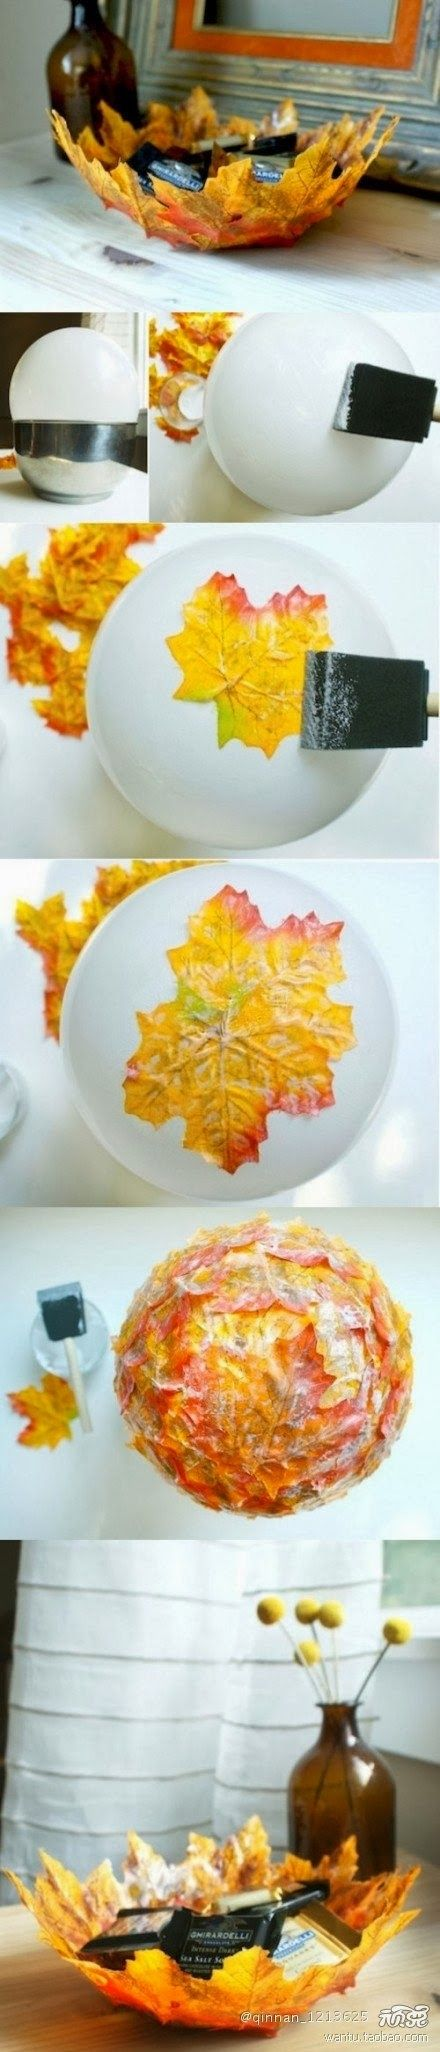 Crafts DIY 2014 style 2014 new trends | [ CaptainMarketing.com ]